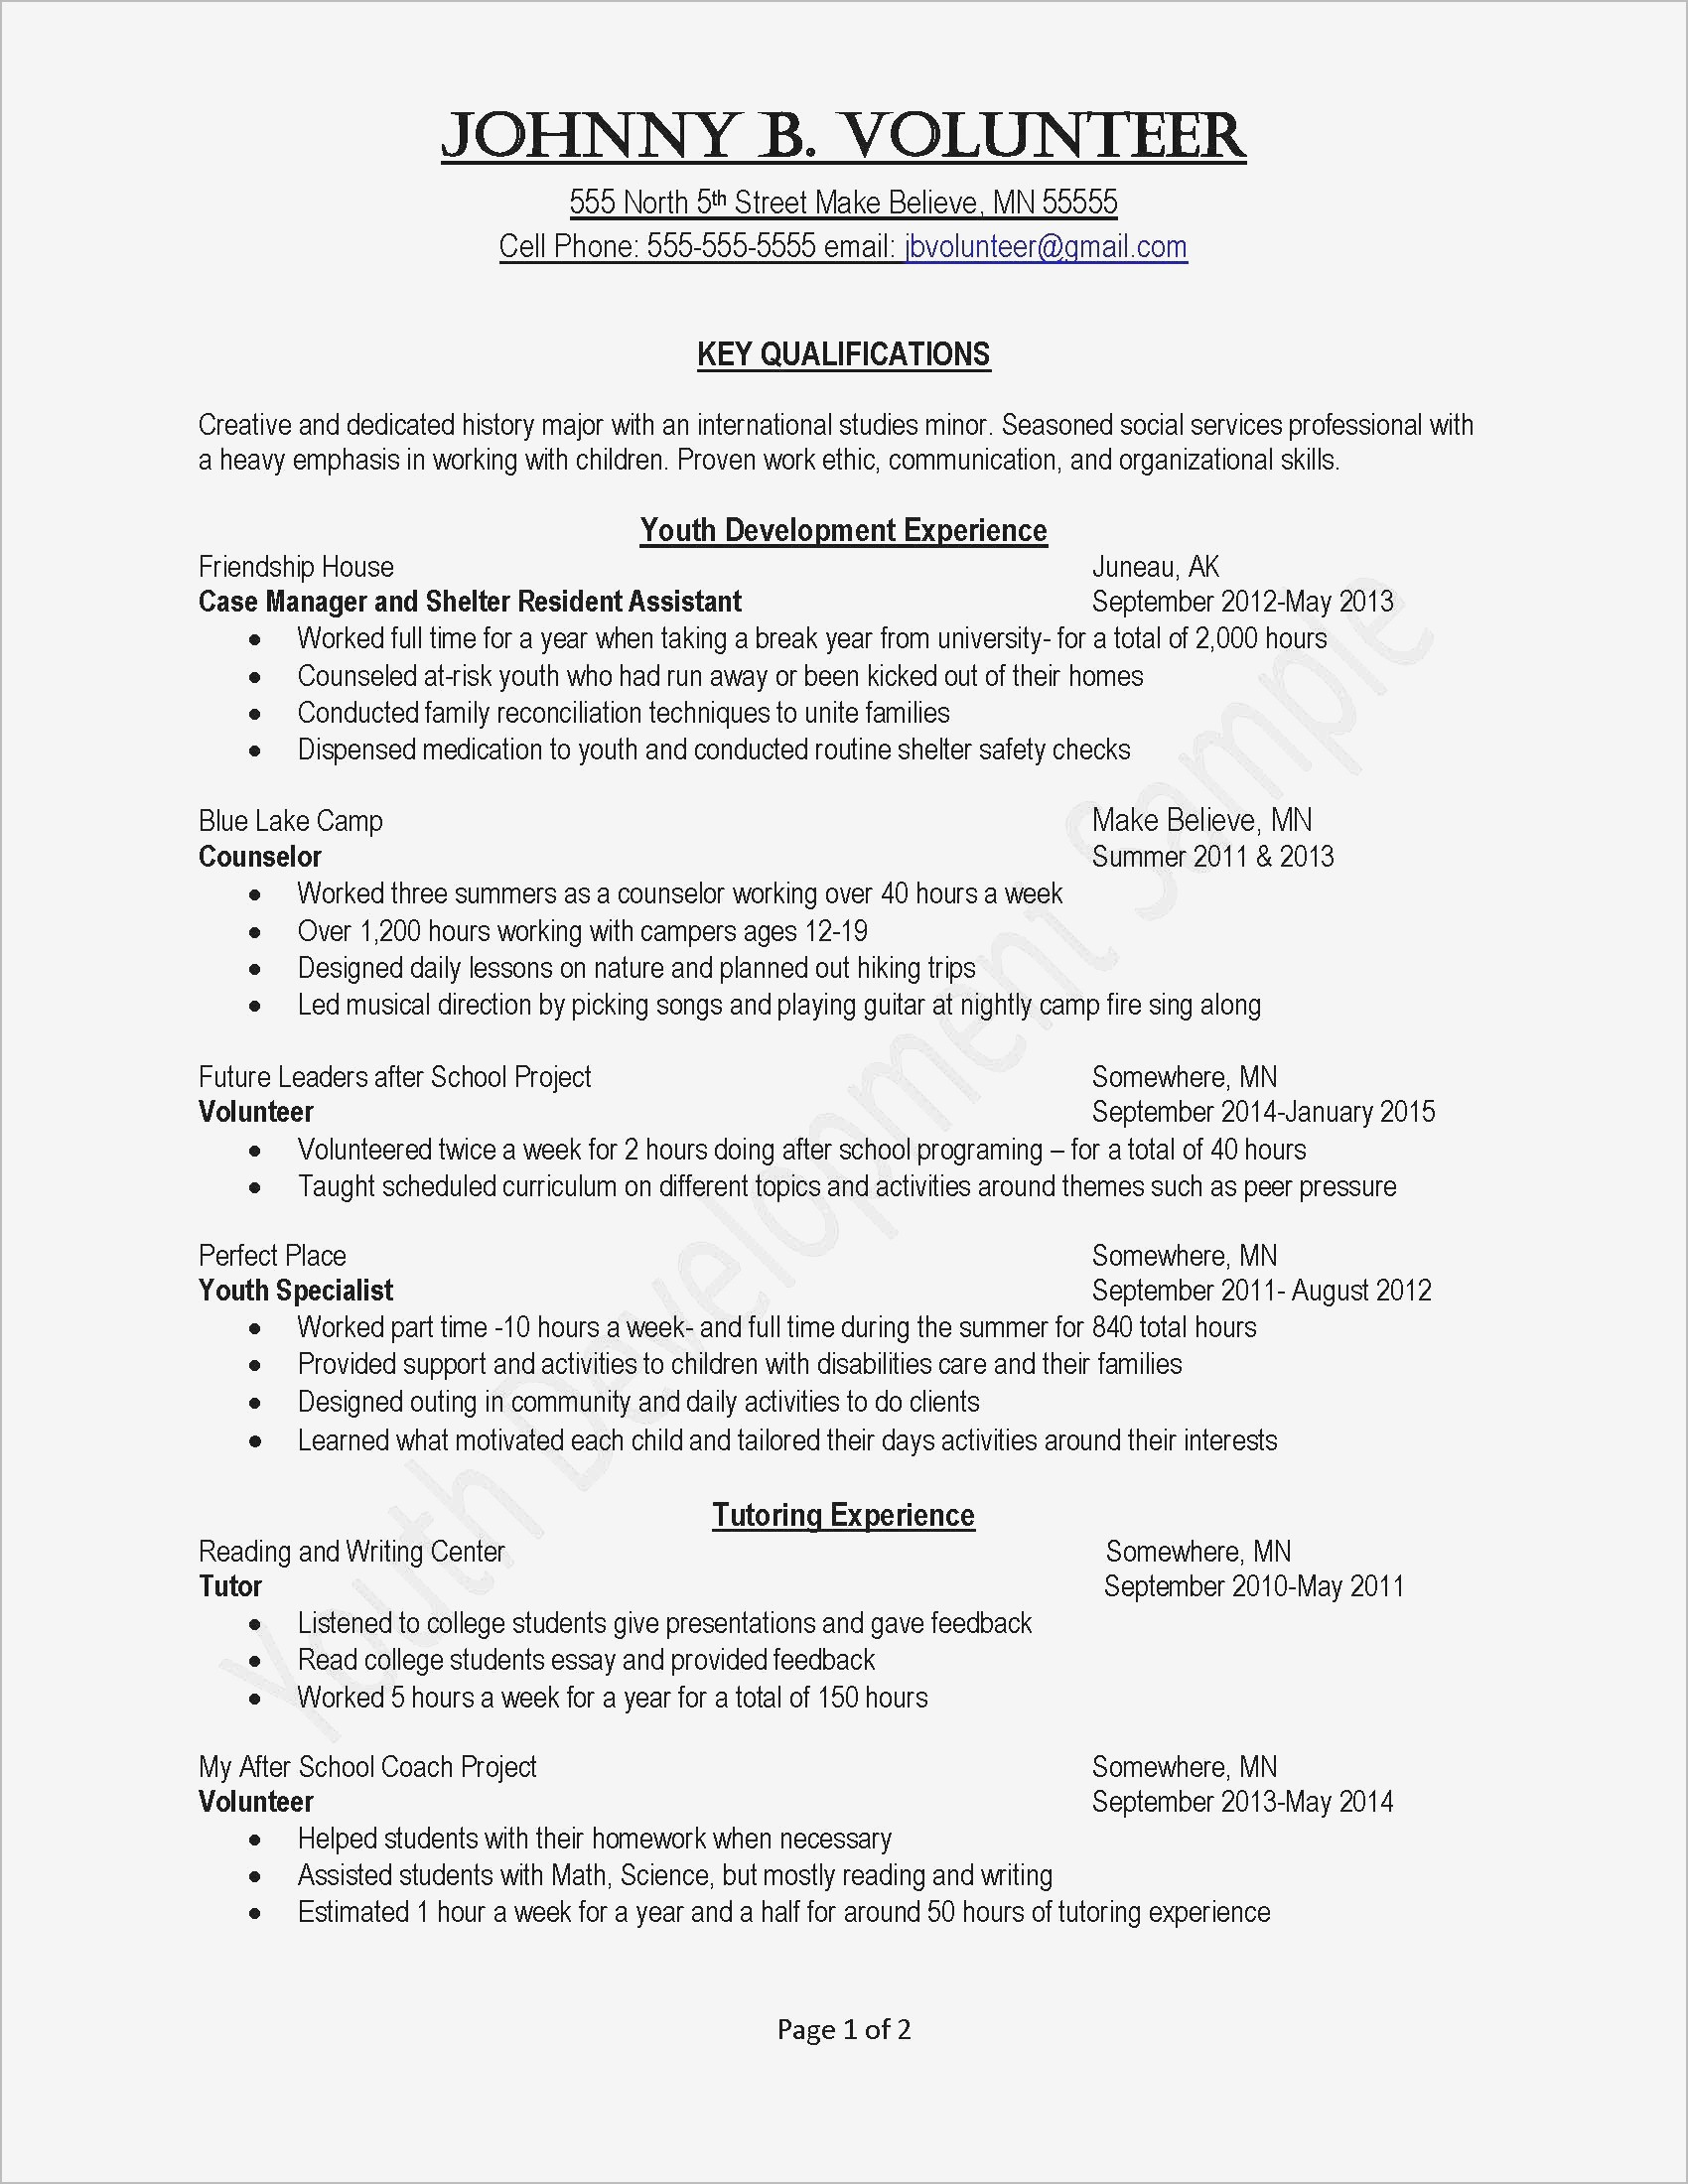 business cover letter template word Collection-Resume Templates Word 2013 Cover Letter Template Modern Copy Od Consultant Cover Letter Web 18-p